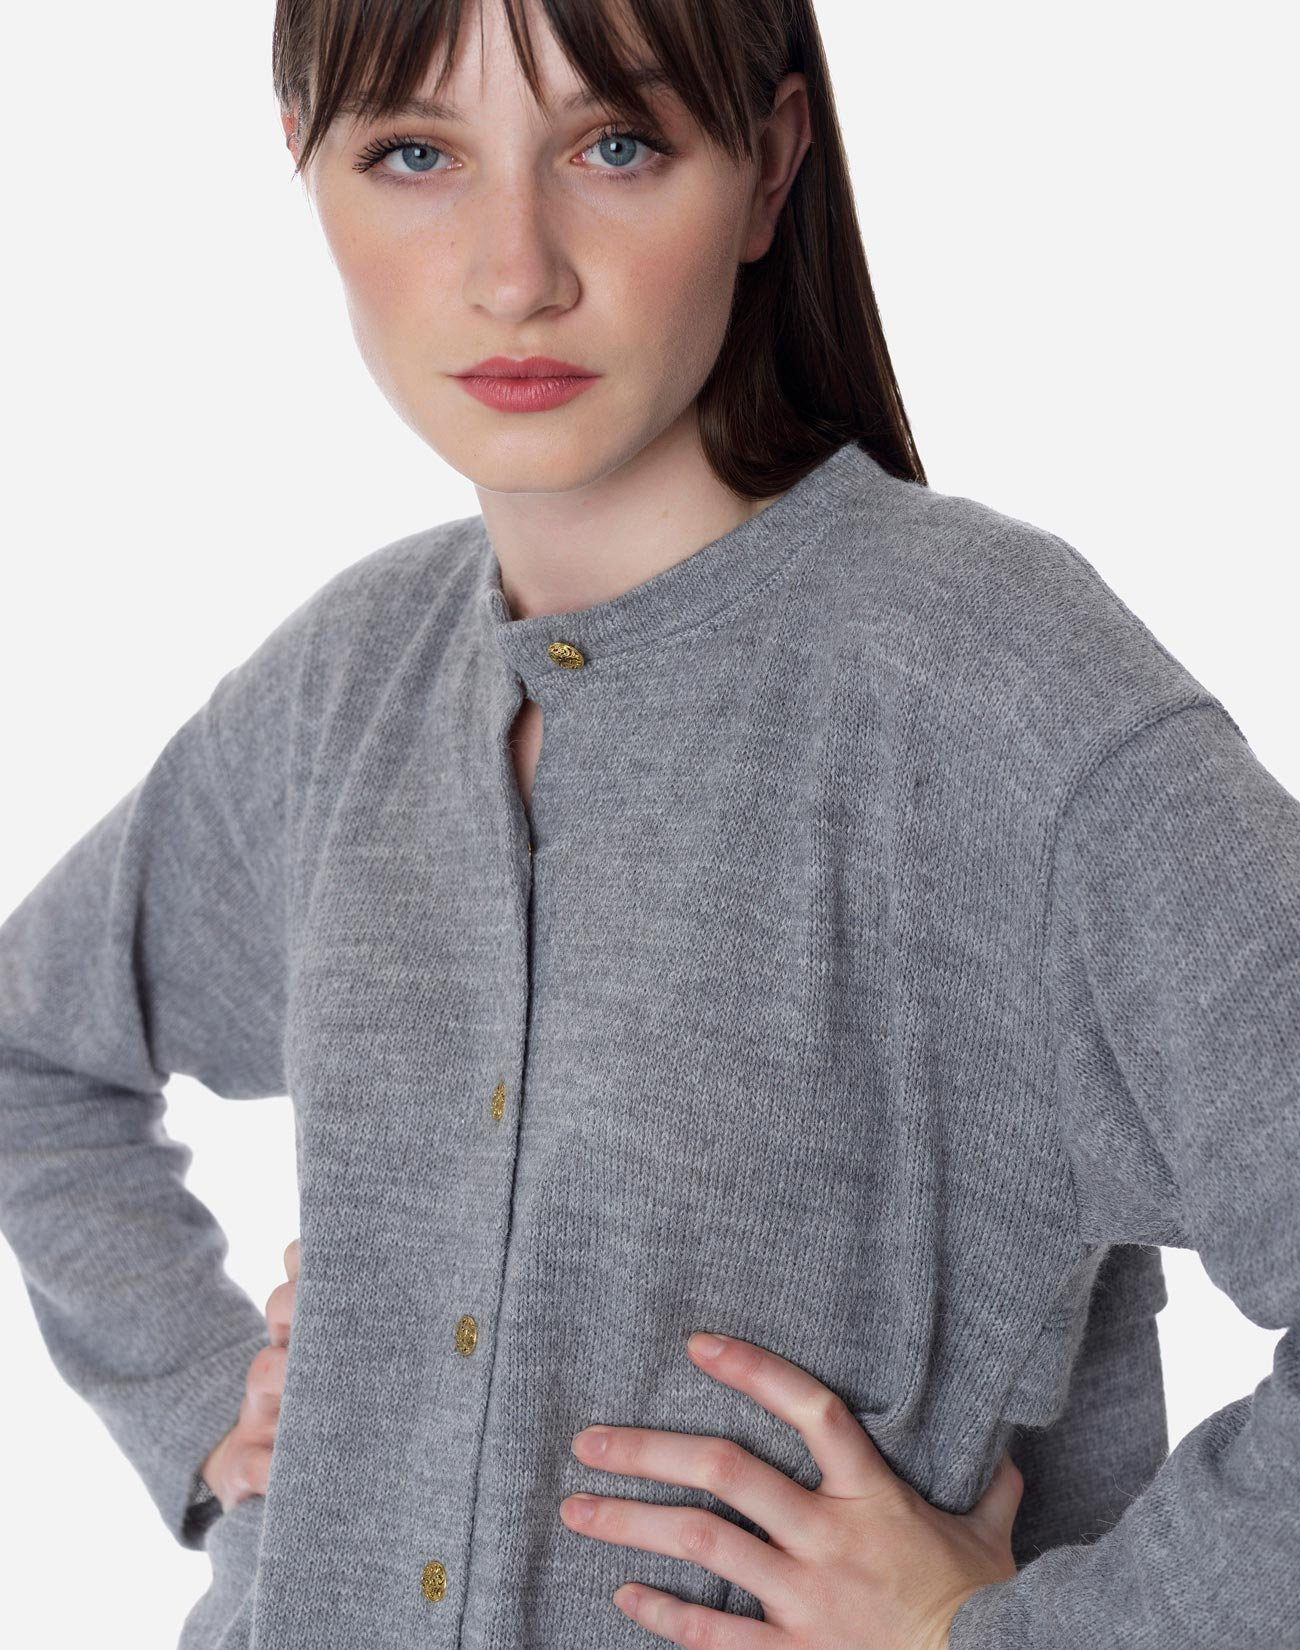 Knit cardigan with buttons